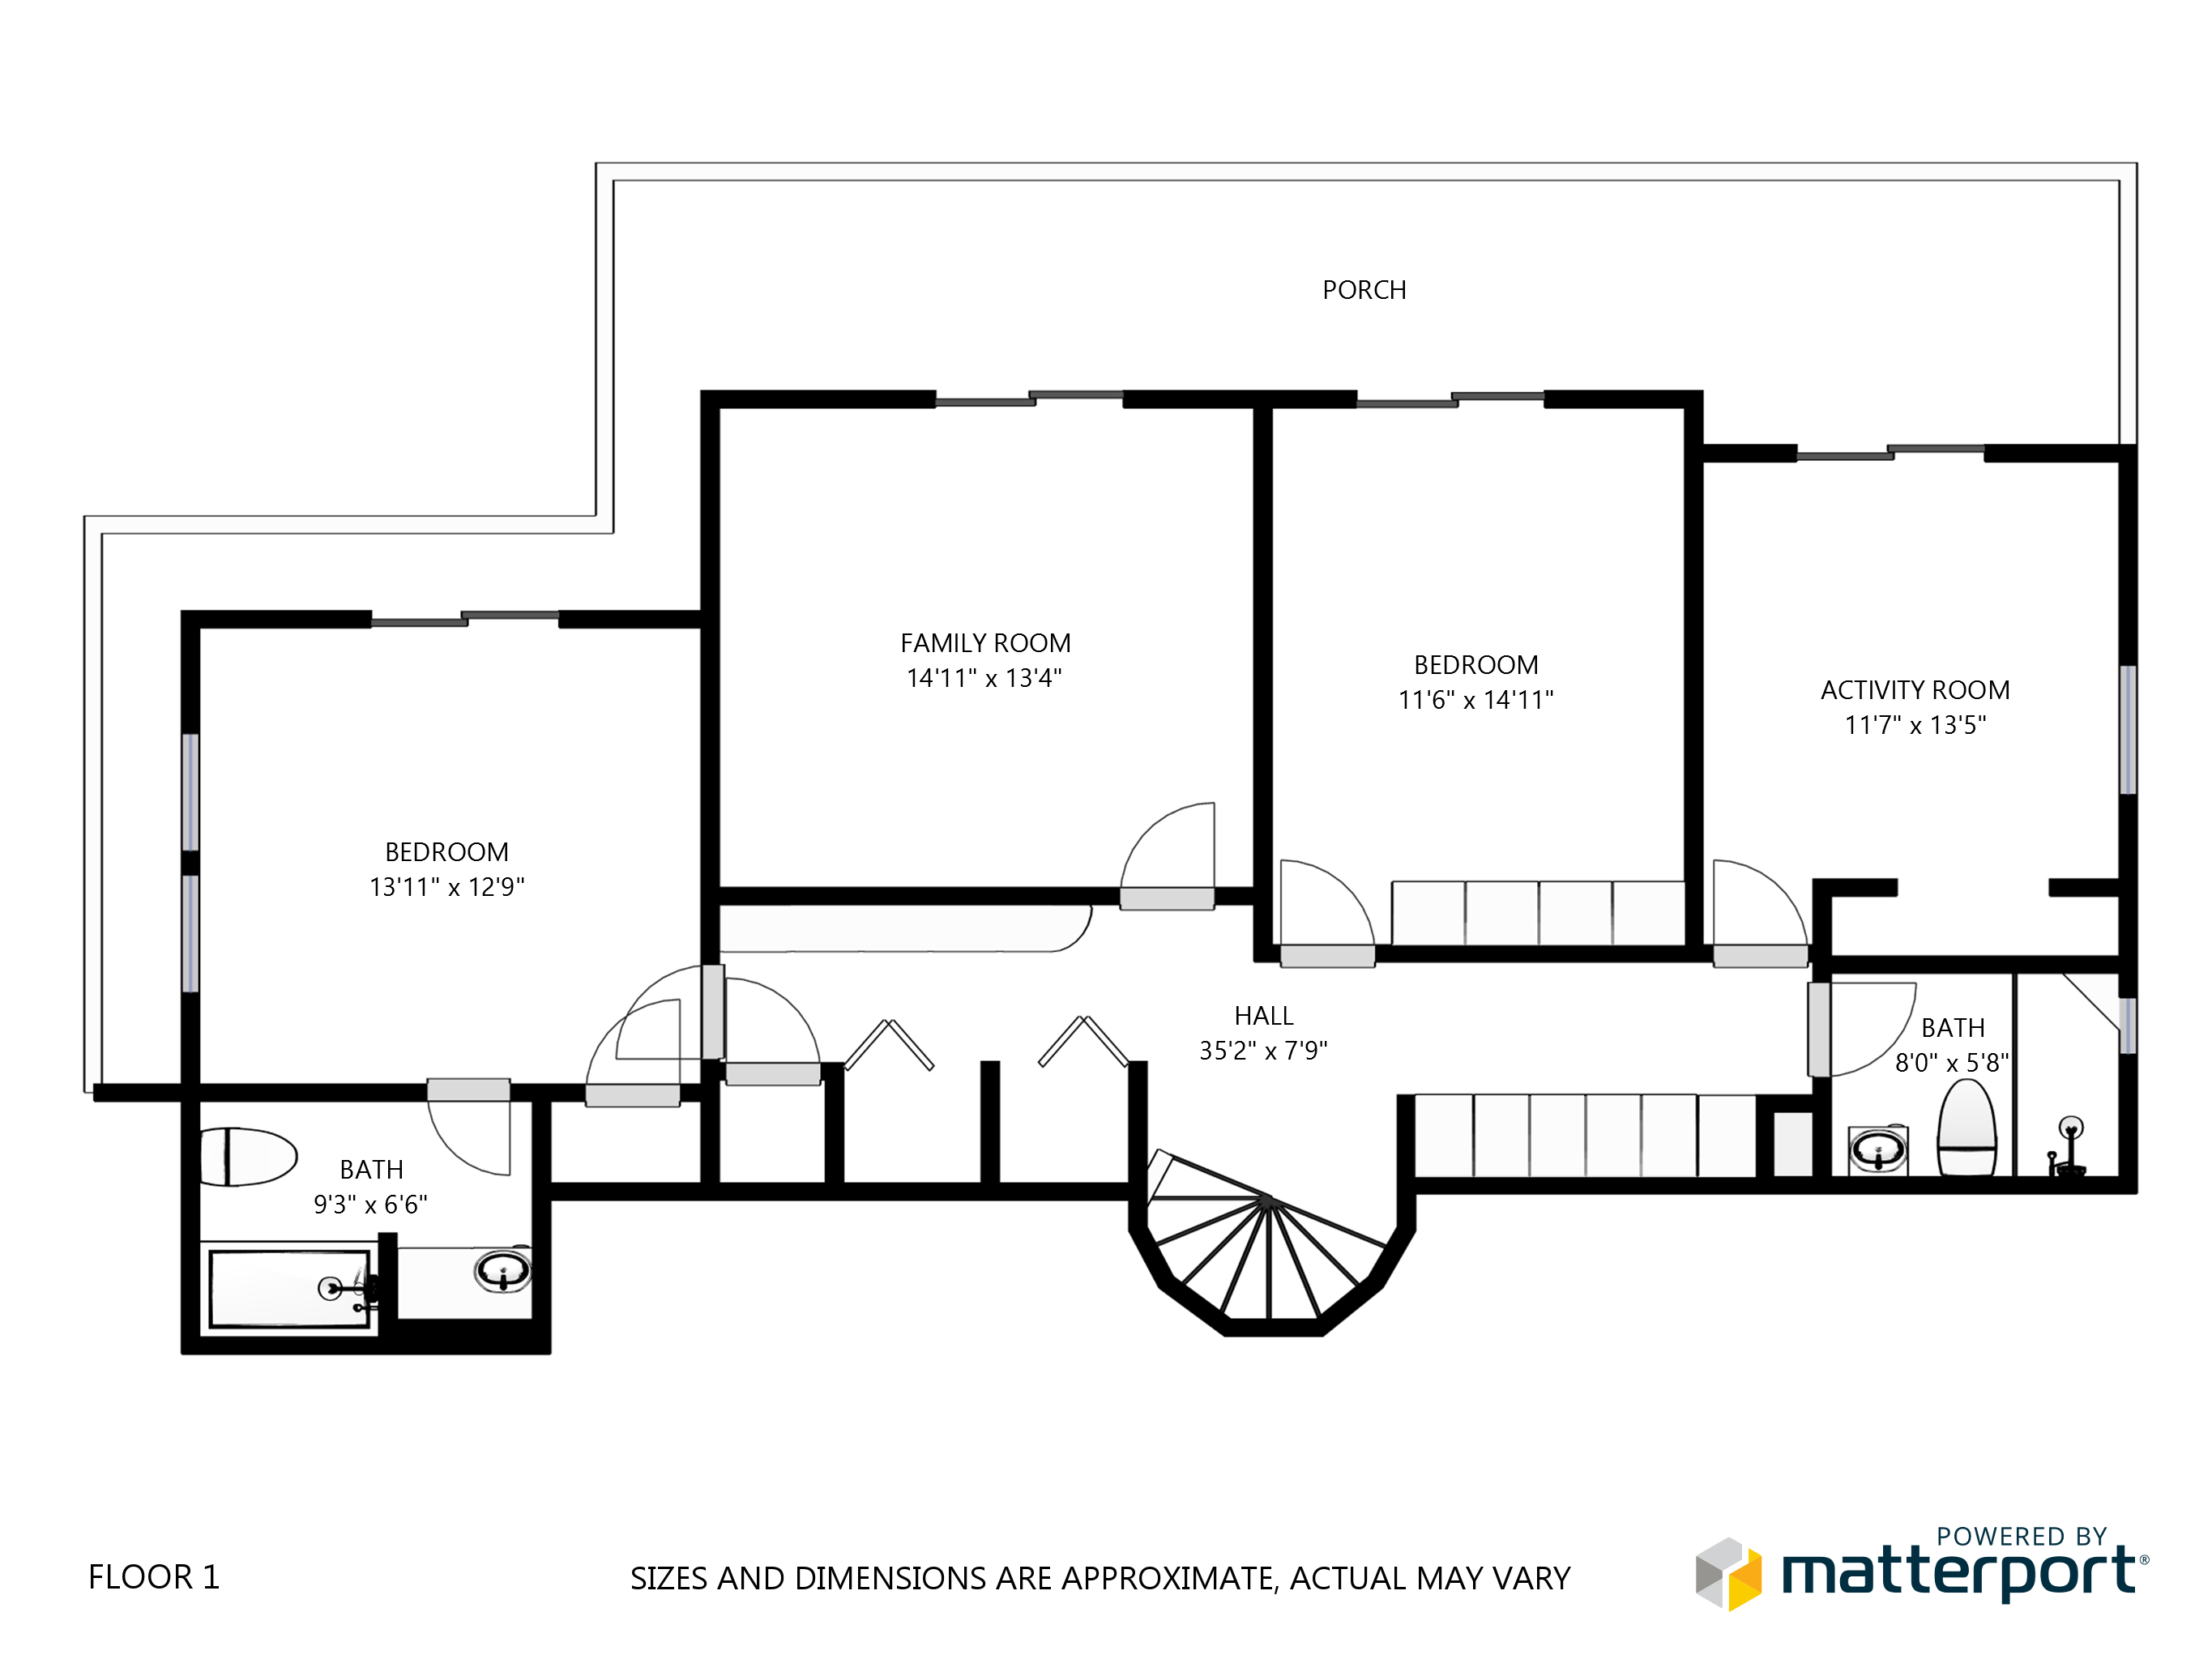 virtual floor plans gallery of draw your own floorplans with dfw virtual tours schematic floor plan dfw virtual tours schematic floor plan with virtual floor plans